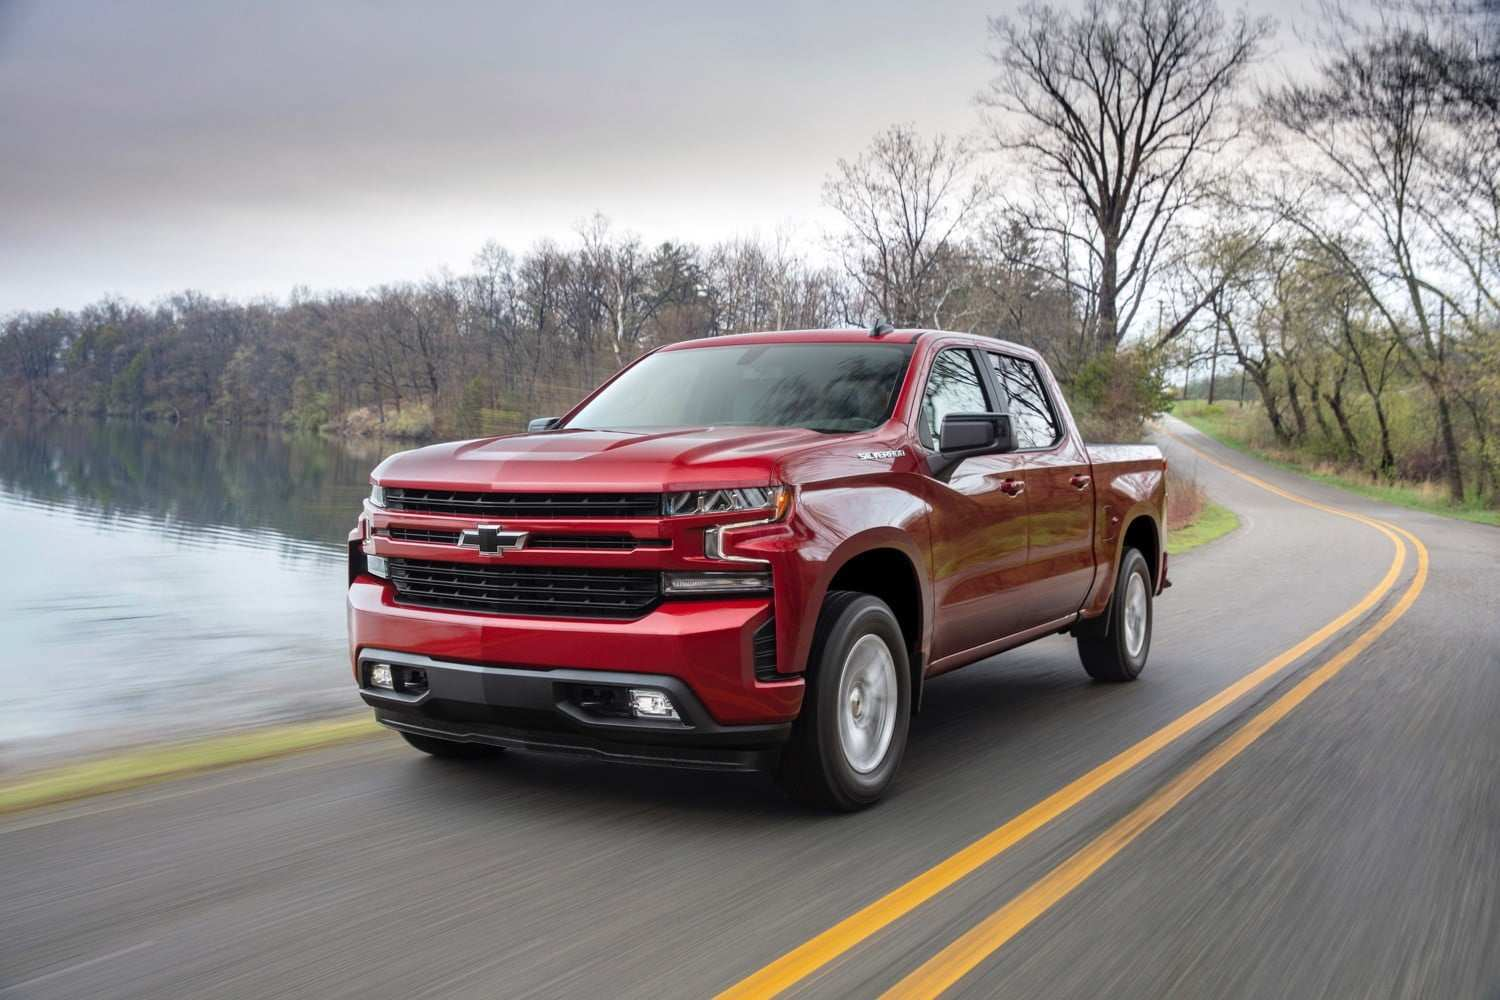 30 The New Gmc 2019 Jeep Performance And New Engine Style with New Gmc 2019 Jeep Performance And New Engine